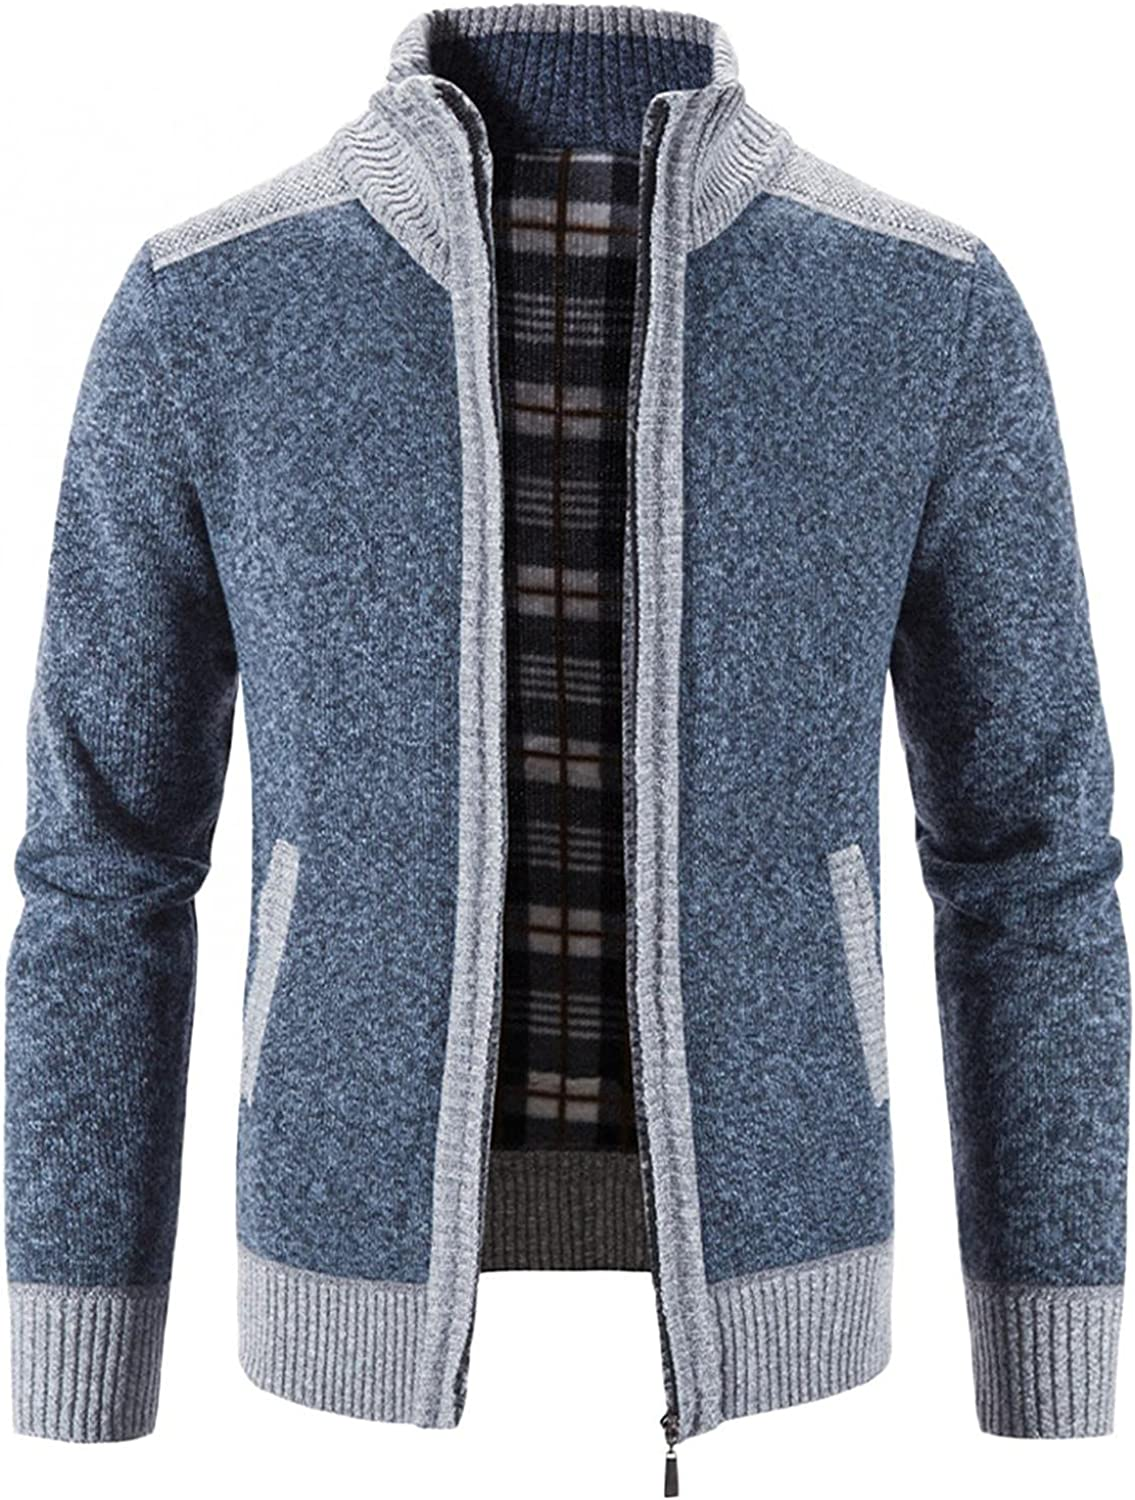 Aayomet Fashion Cardigan for Men Winter Warm Patchwork Zipper Long Sleeve Stand Collar Casual Pullover Tops Blouses Coat